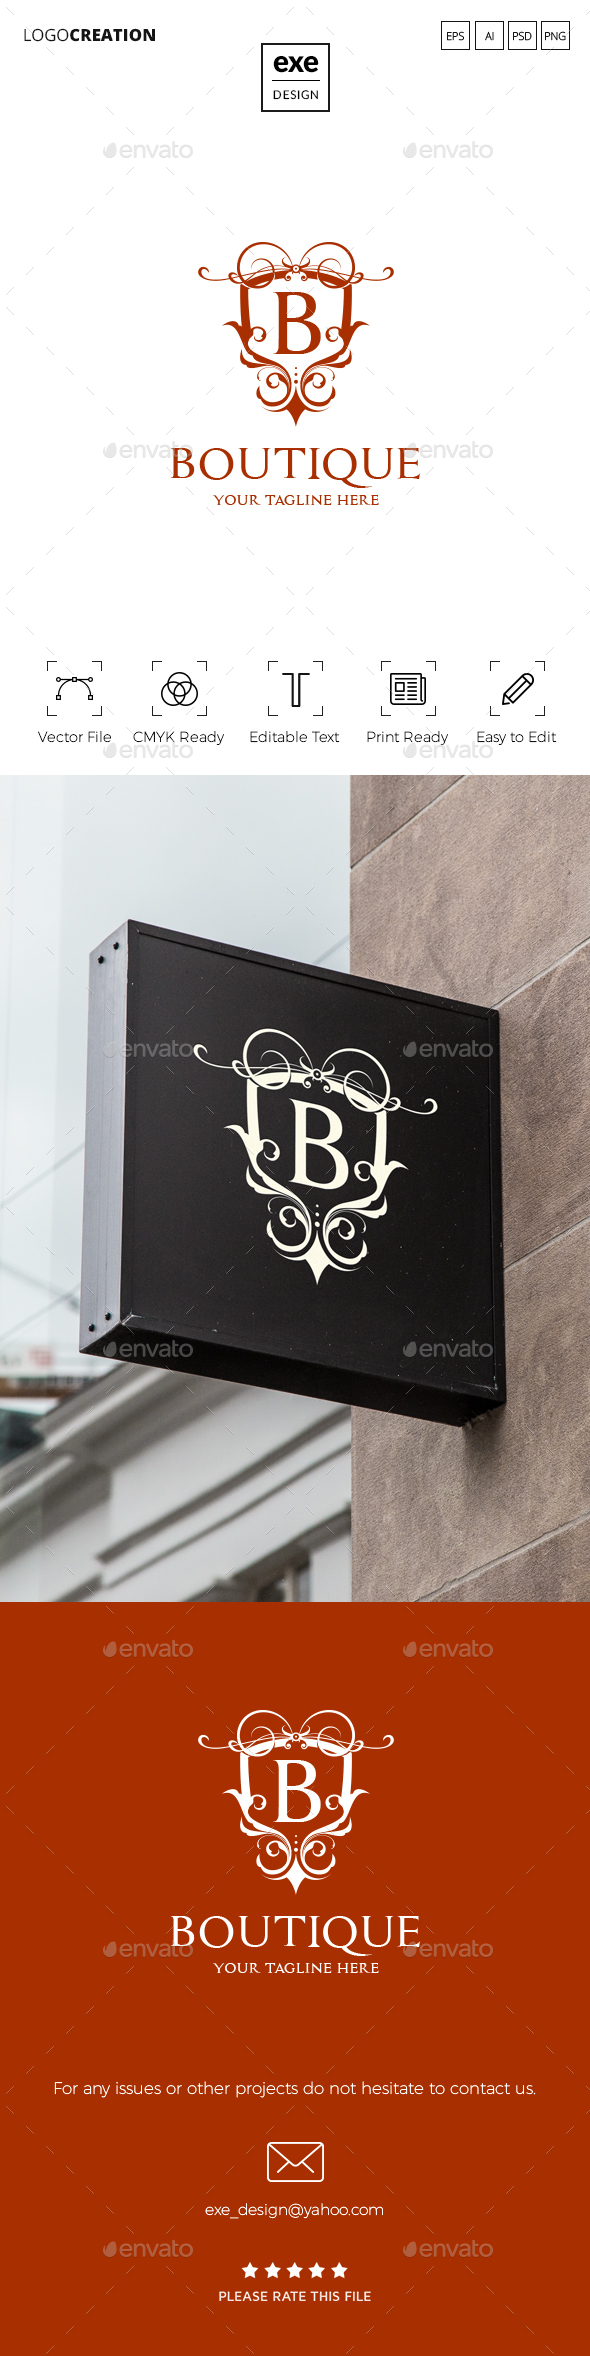 Letter B Logo - Vector Abstract